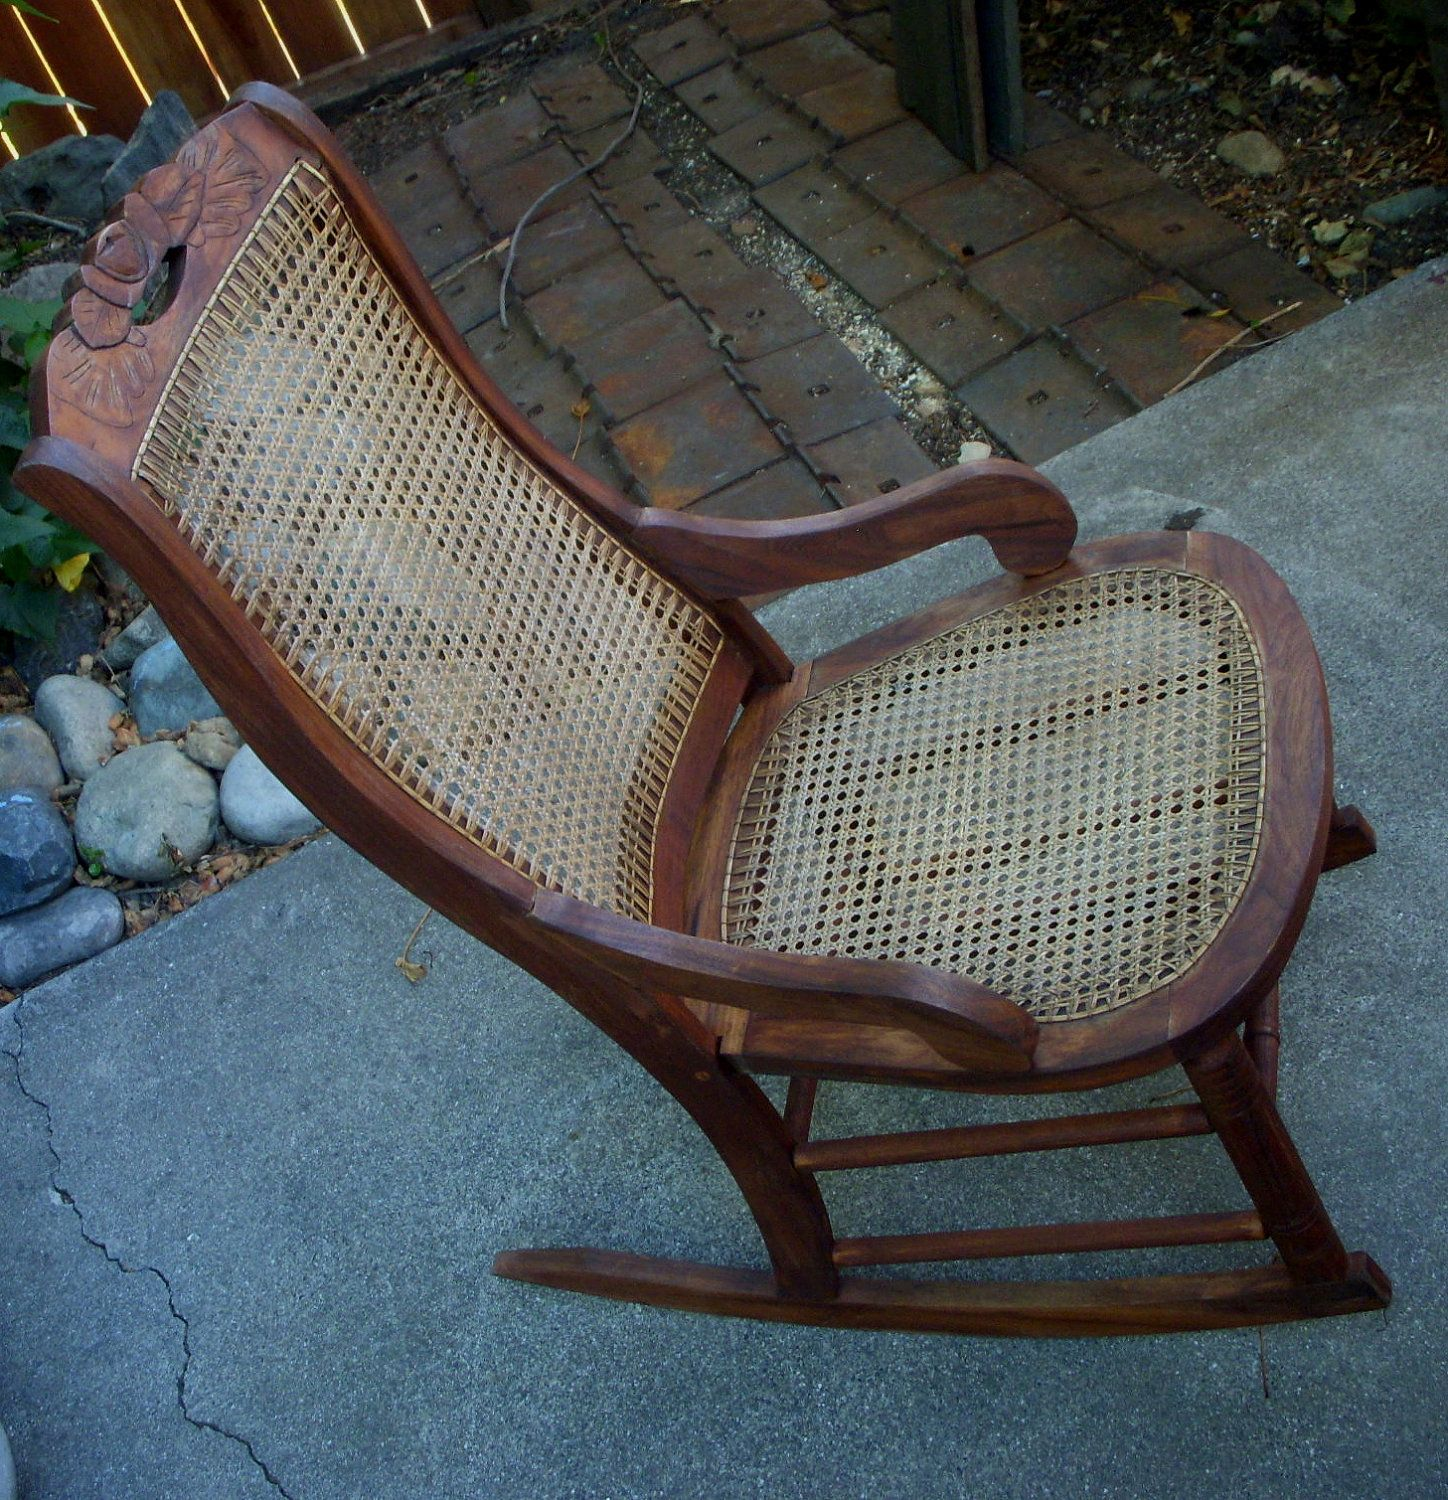 Antique Rocking Chair - Wood and Cane Seat - LOCAL pick up or delivery  only. $400.00, via Etsy. i have one very close to this in the attic. - Antique Rocker, Vintage Rocking Chair, Cane Seat, Antique Chair